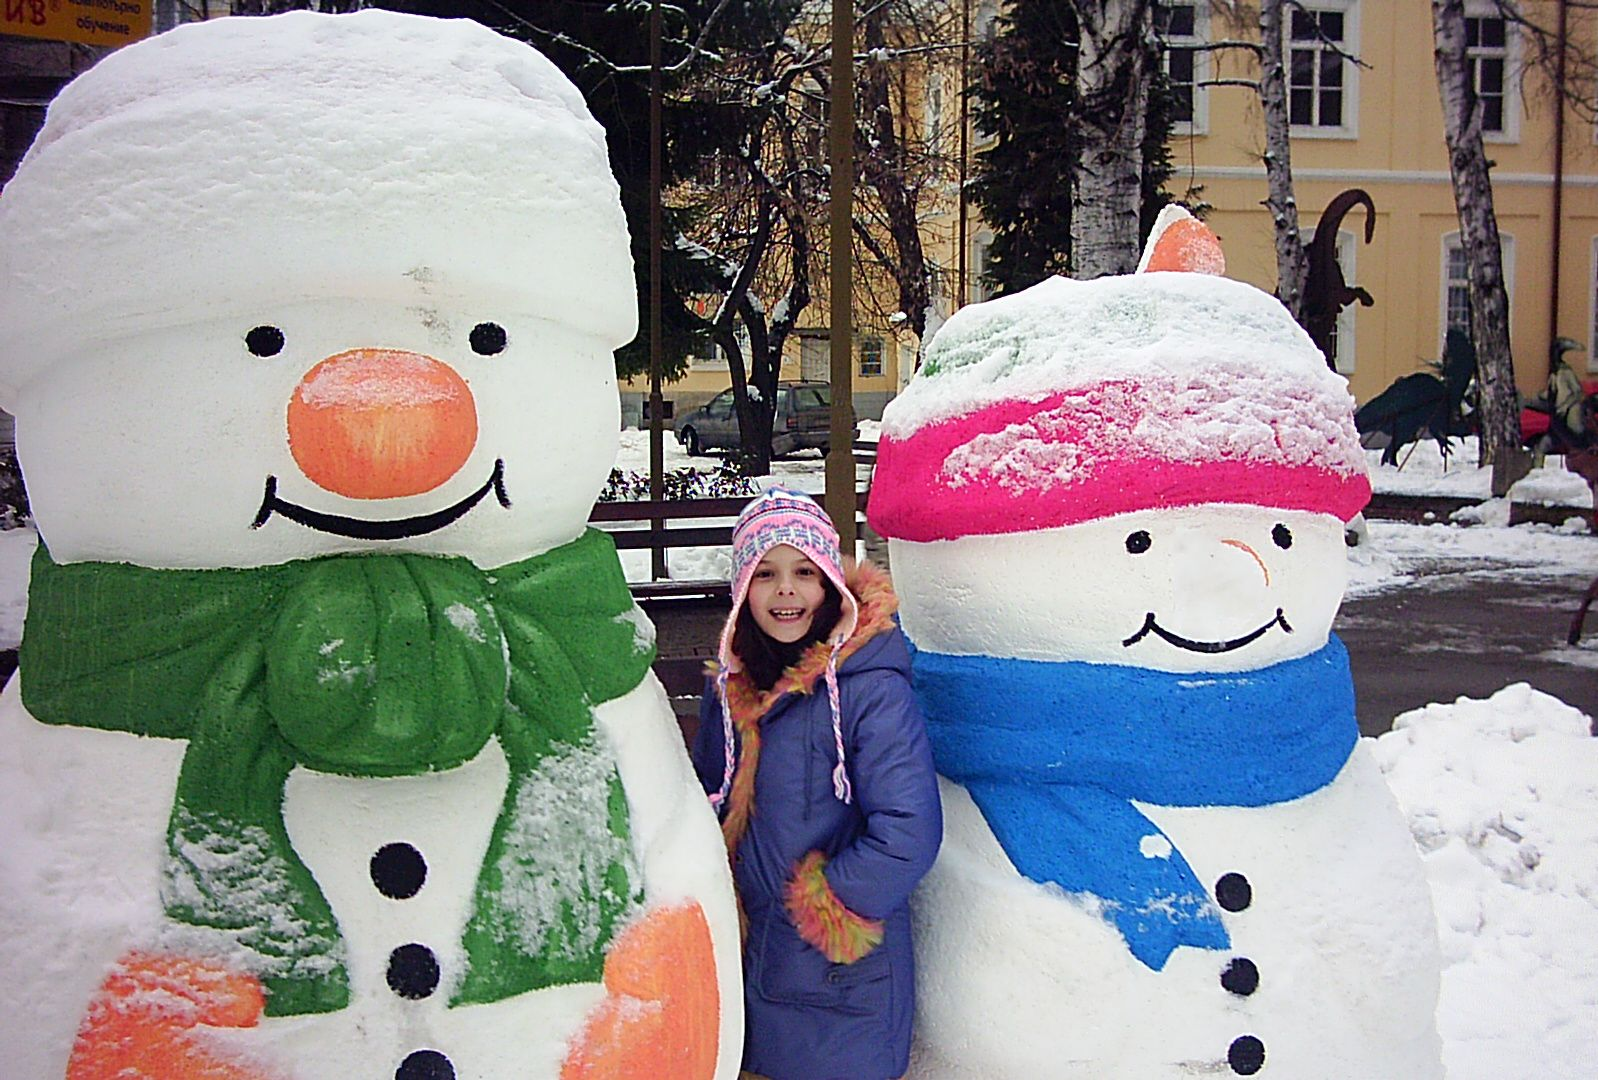 Snowmen and a girl photo